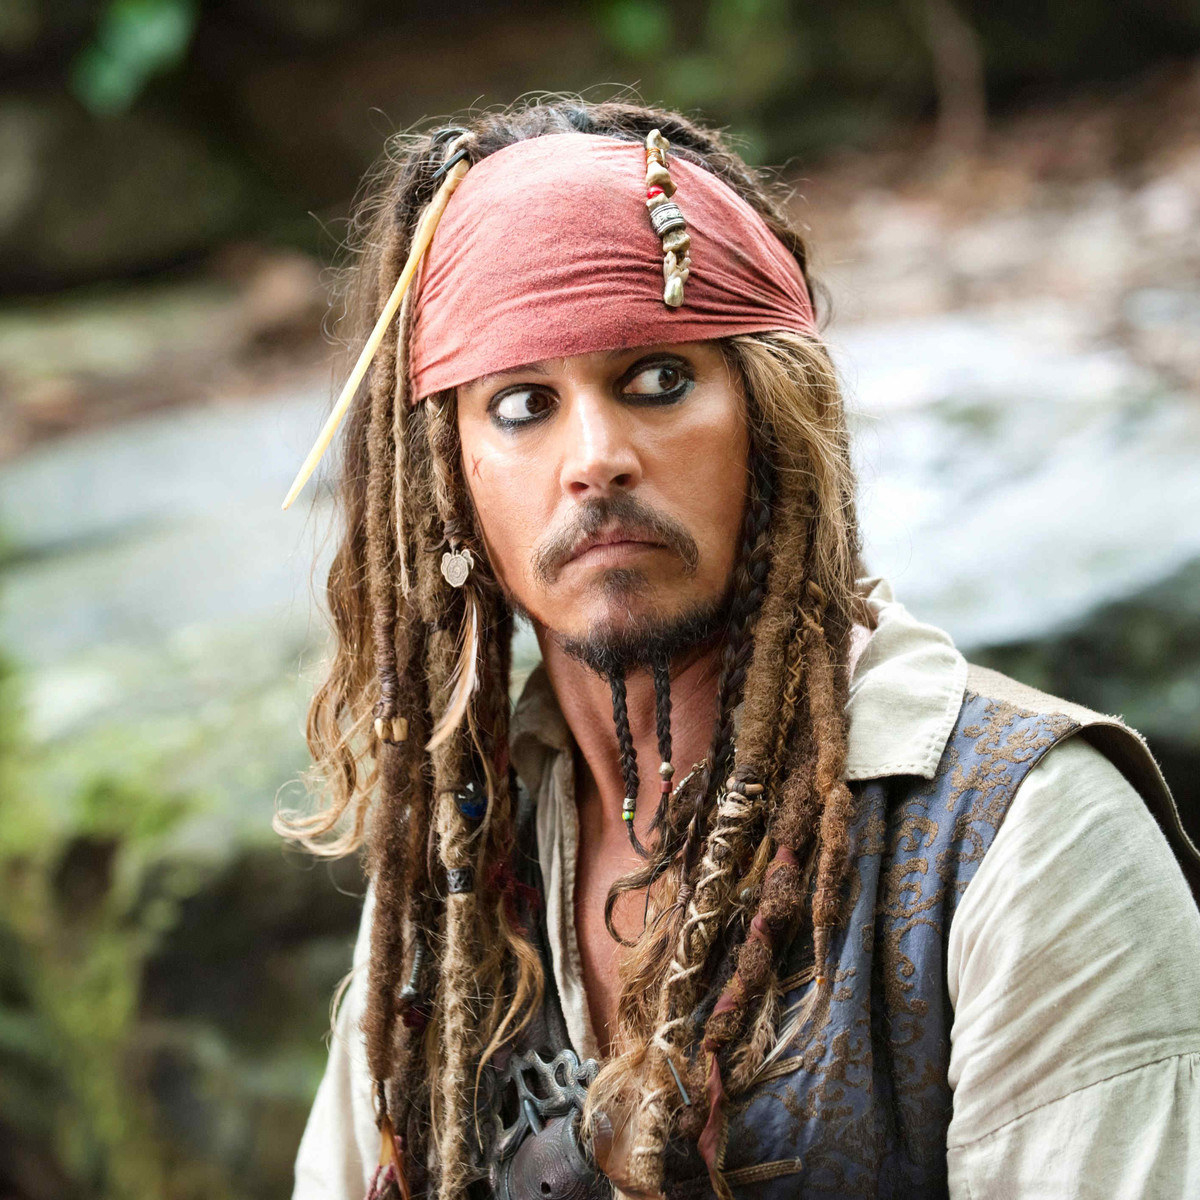 Pirates of the Caribbean  screenwriter Stuart Beattie  originally wrote Jack Sparrow with Hugh Jackman in mind  for the role.